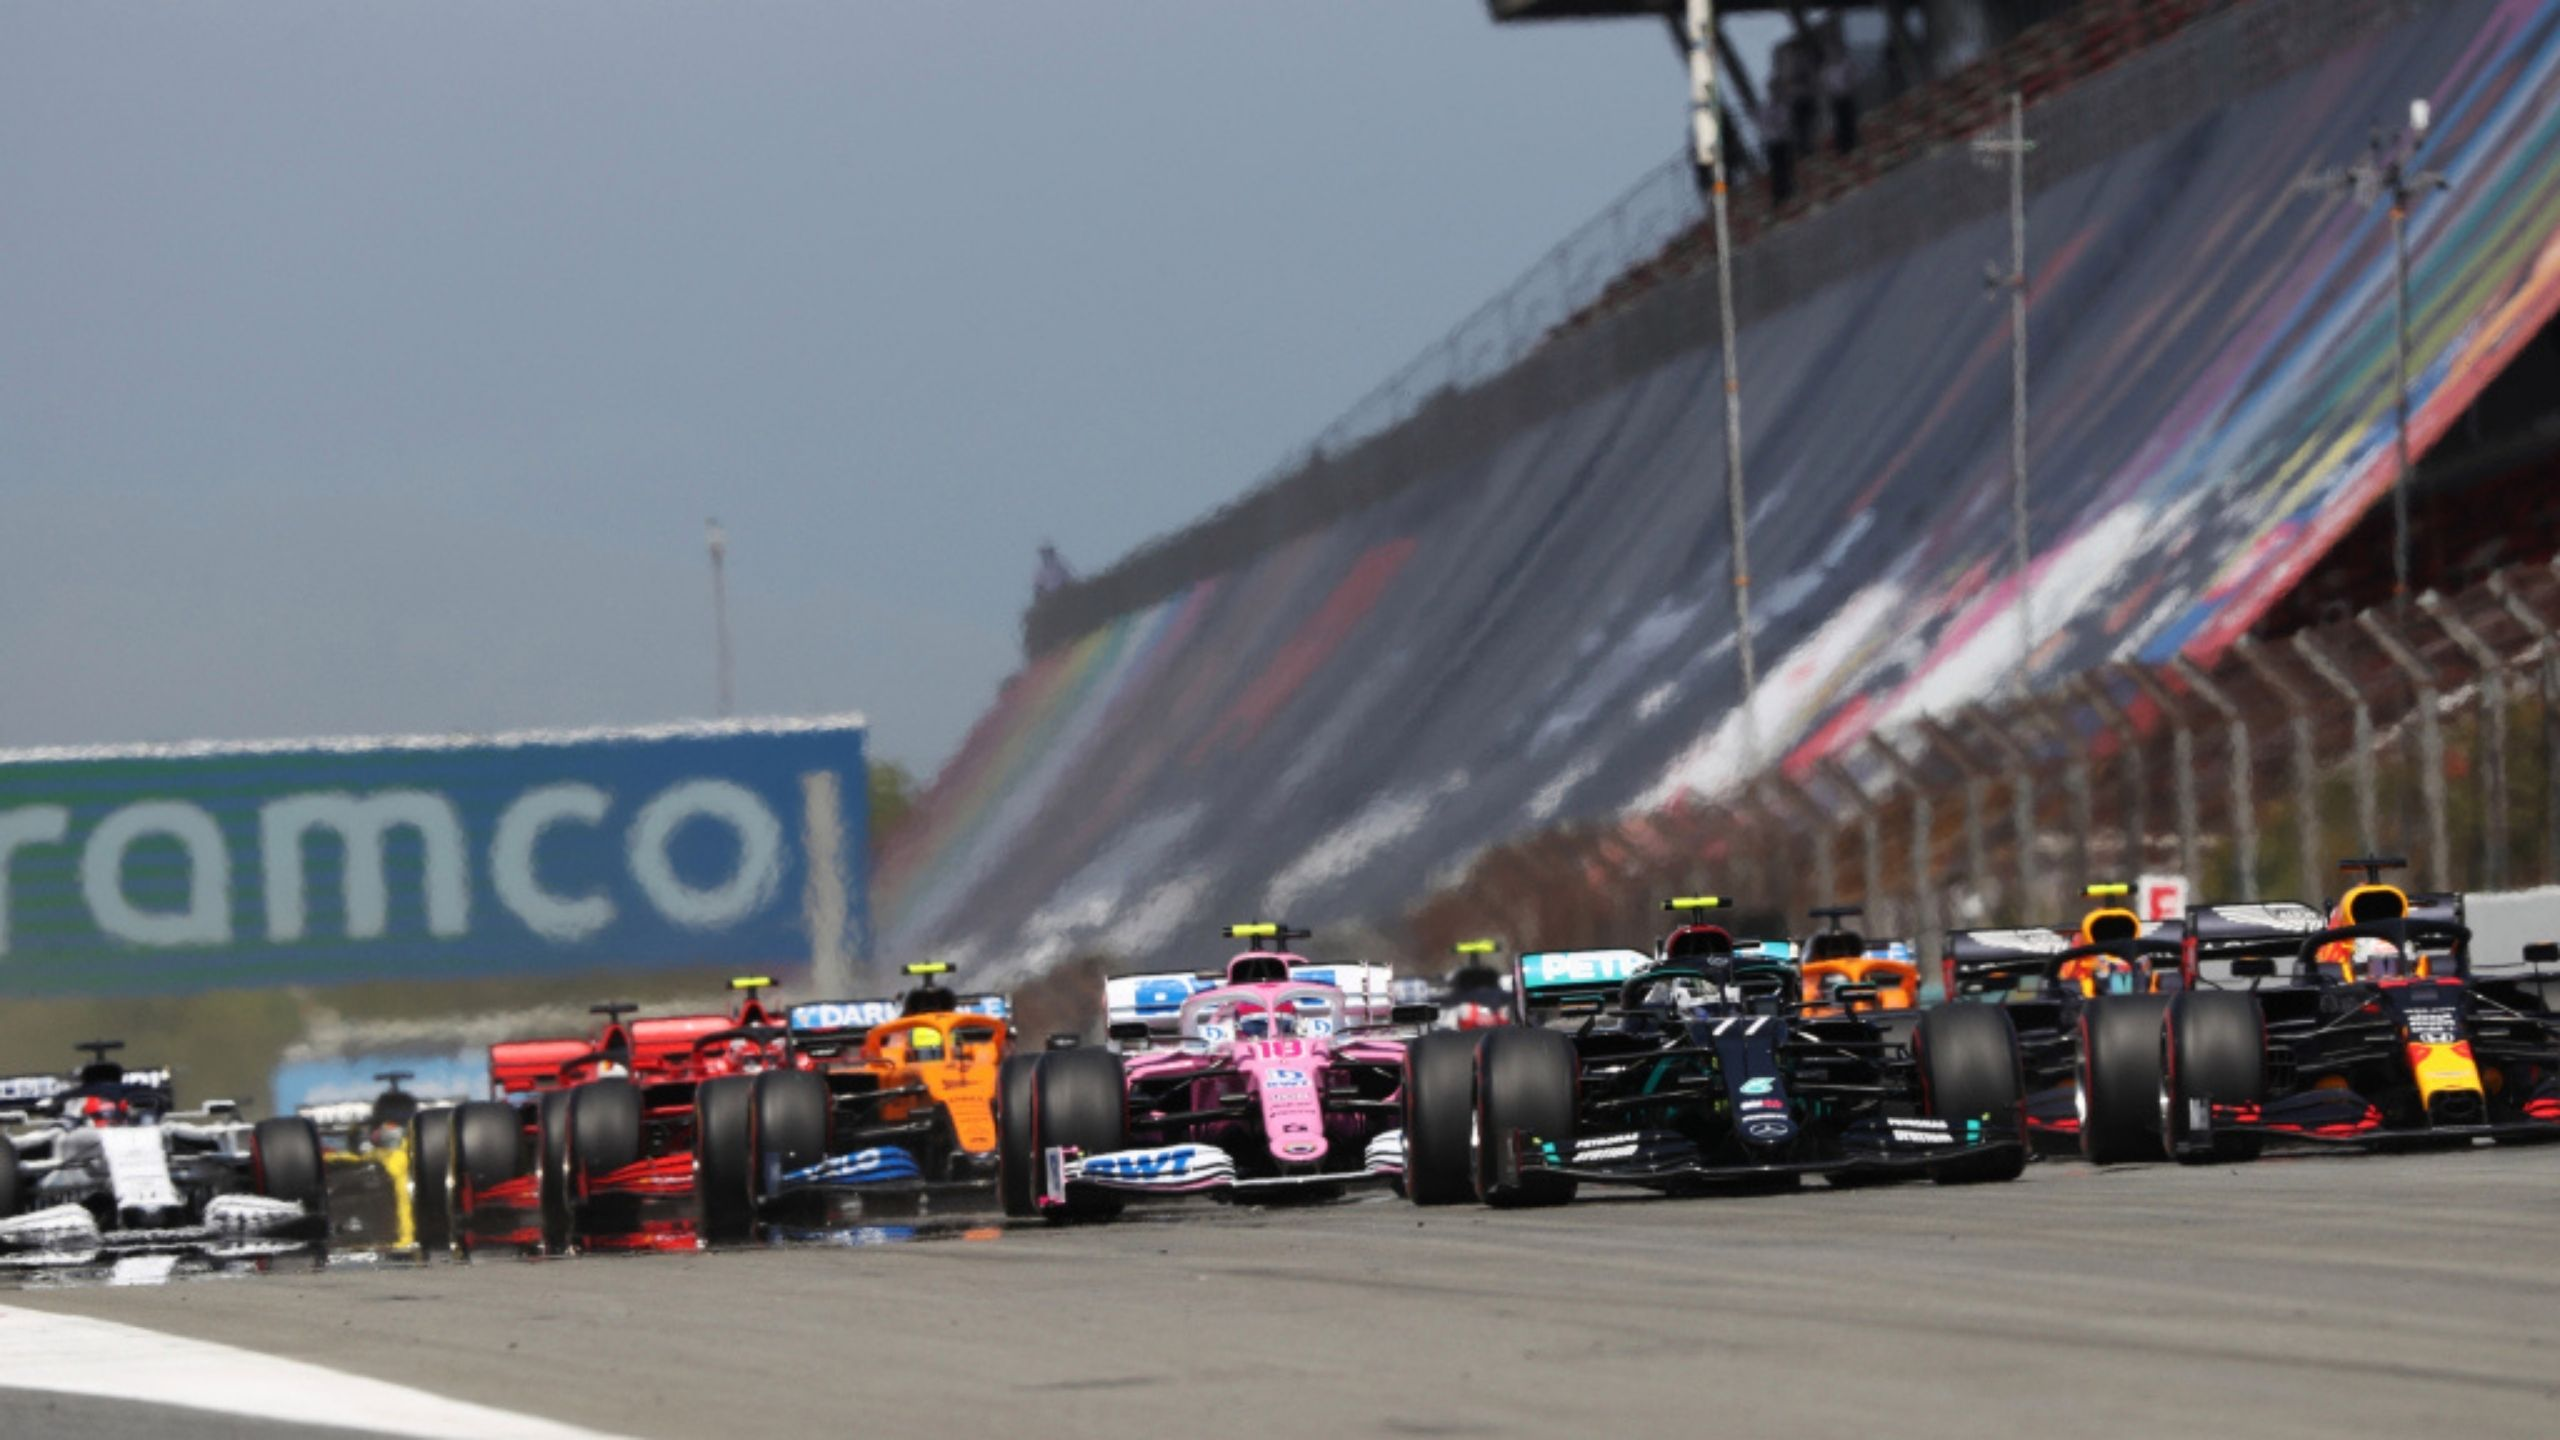 F1 2021 Calendar: Which races have made it to the longest ever F1 Calendar in history?